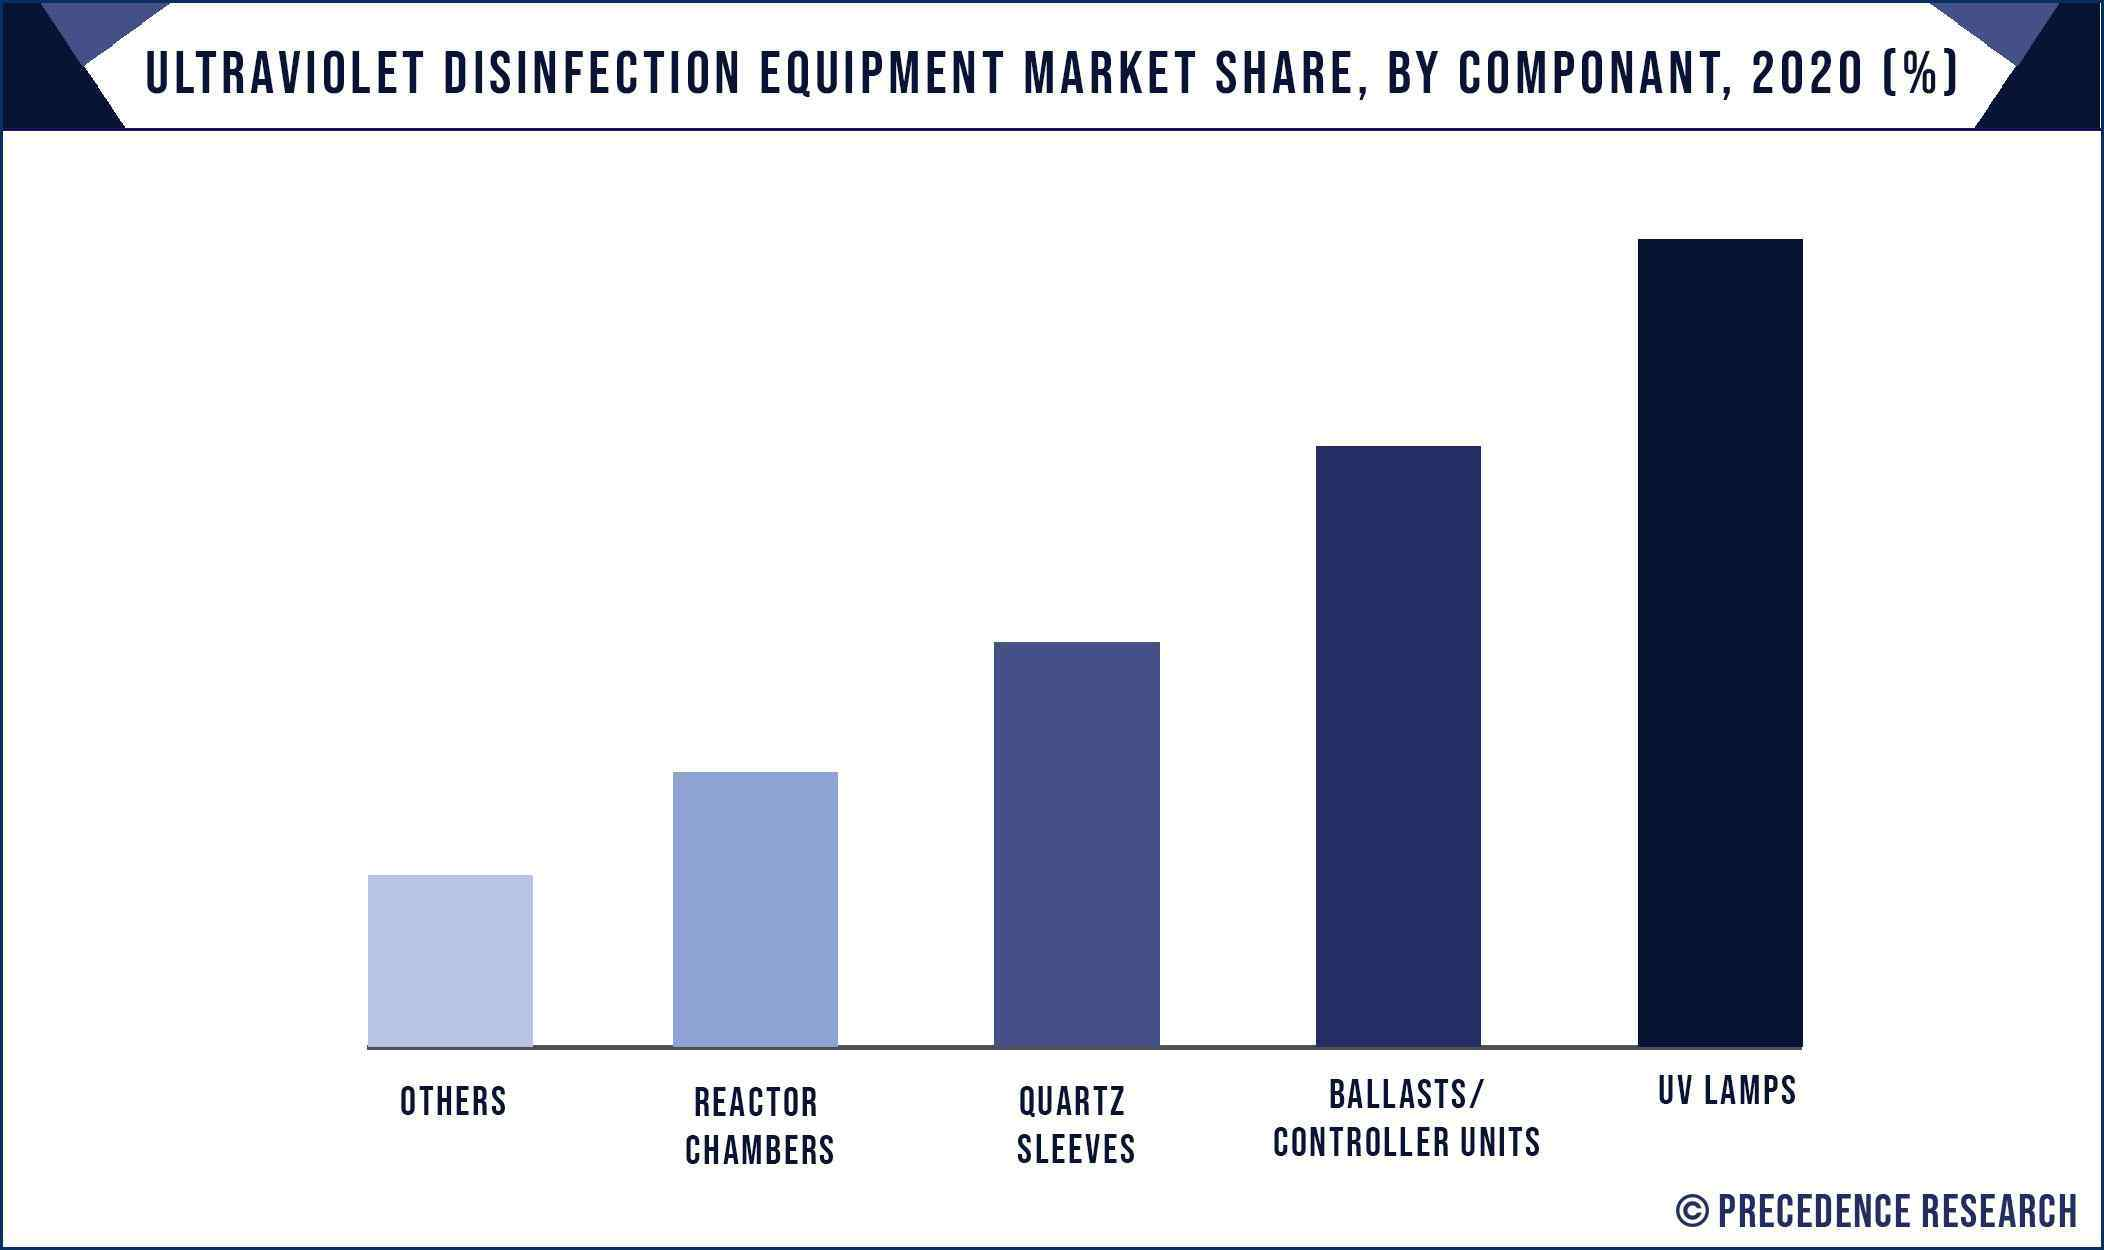 Ultraviolet Disinfection Equipment Market Share, By Component, 2020 (%)